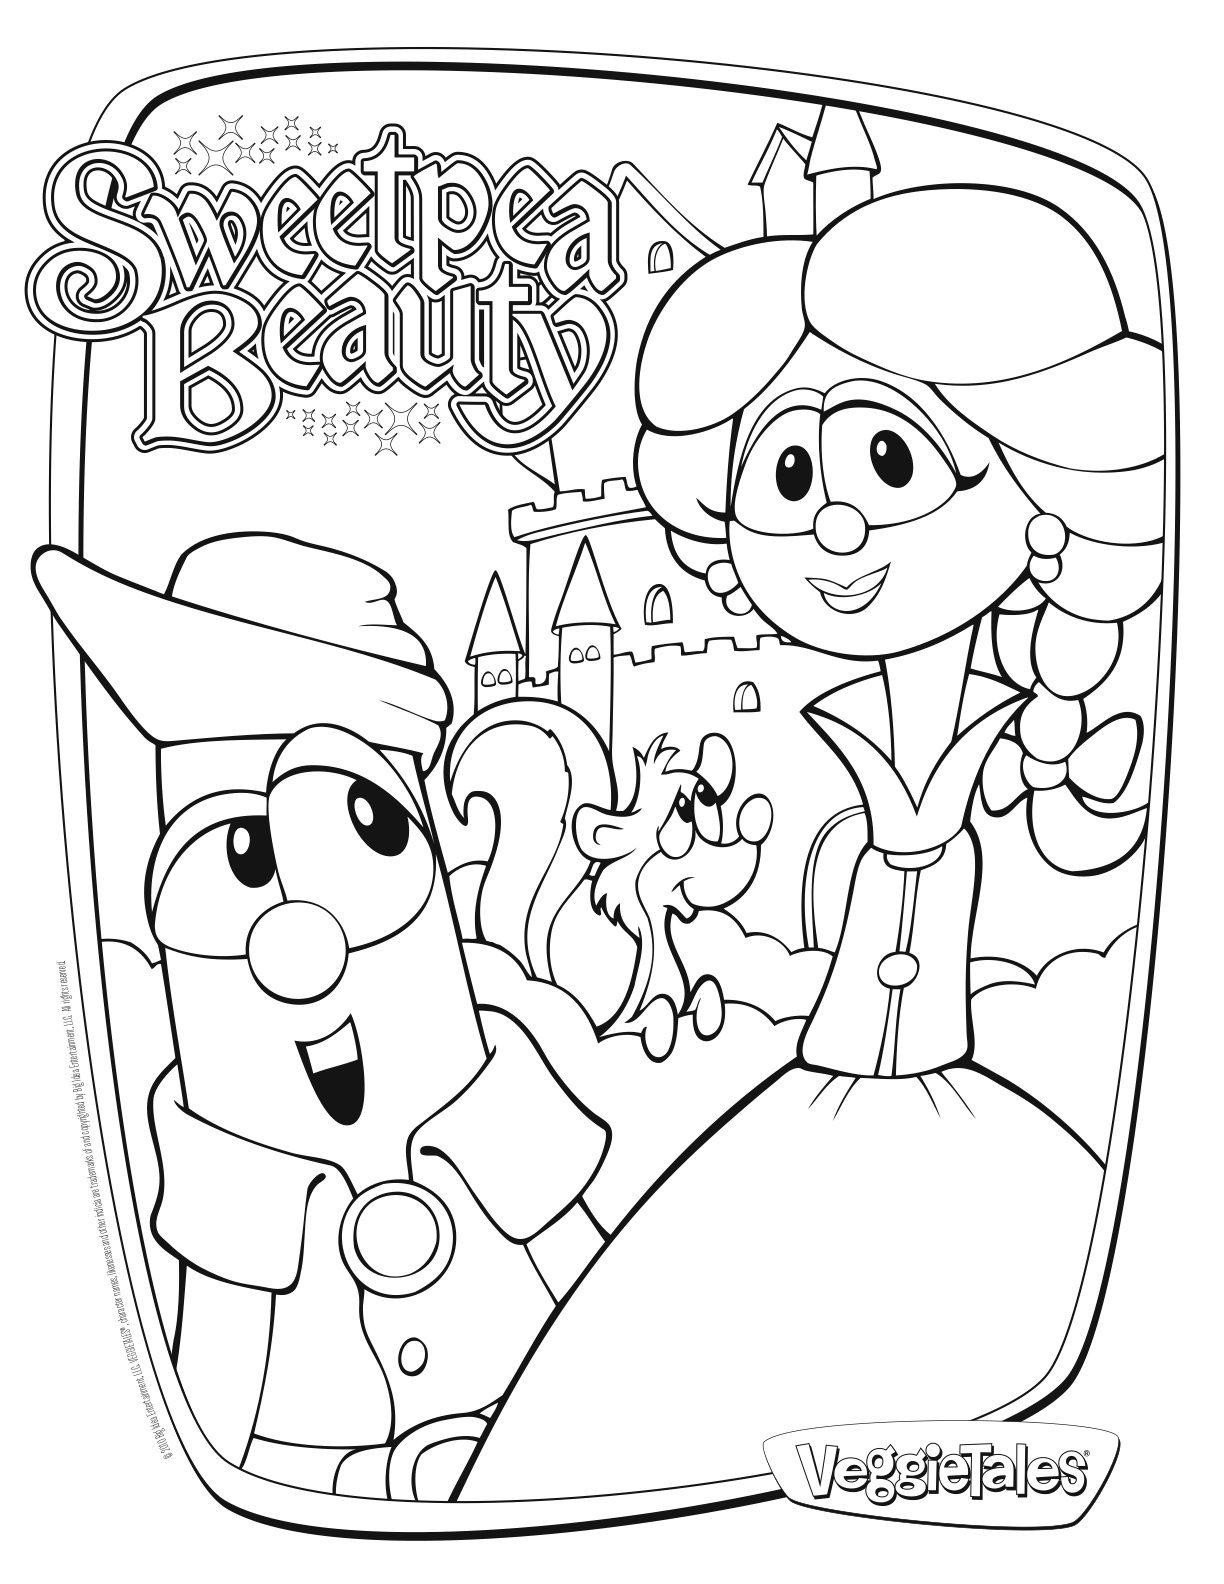 Tons Of Veggie Tales Coloring Pages Sweetpea Beauty Pirate Coloring Pages Coloring Pages For Kids Coloring Pages